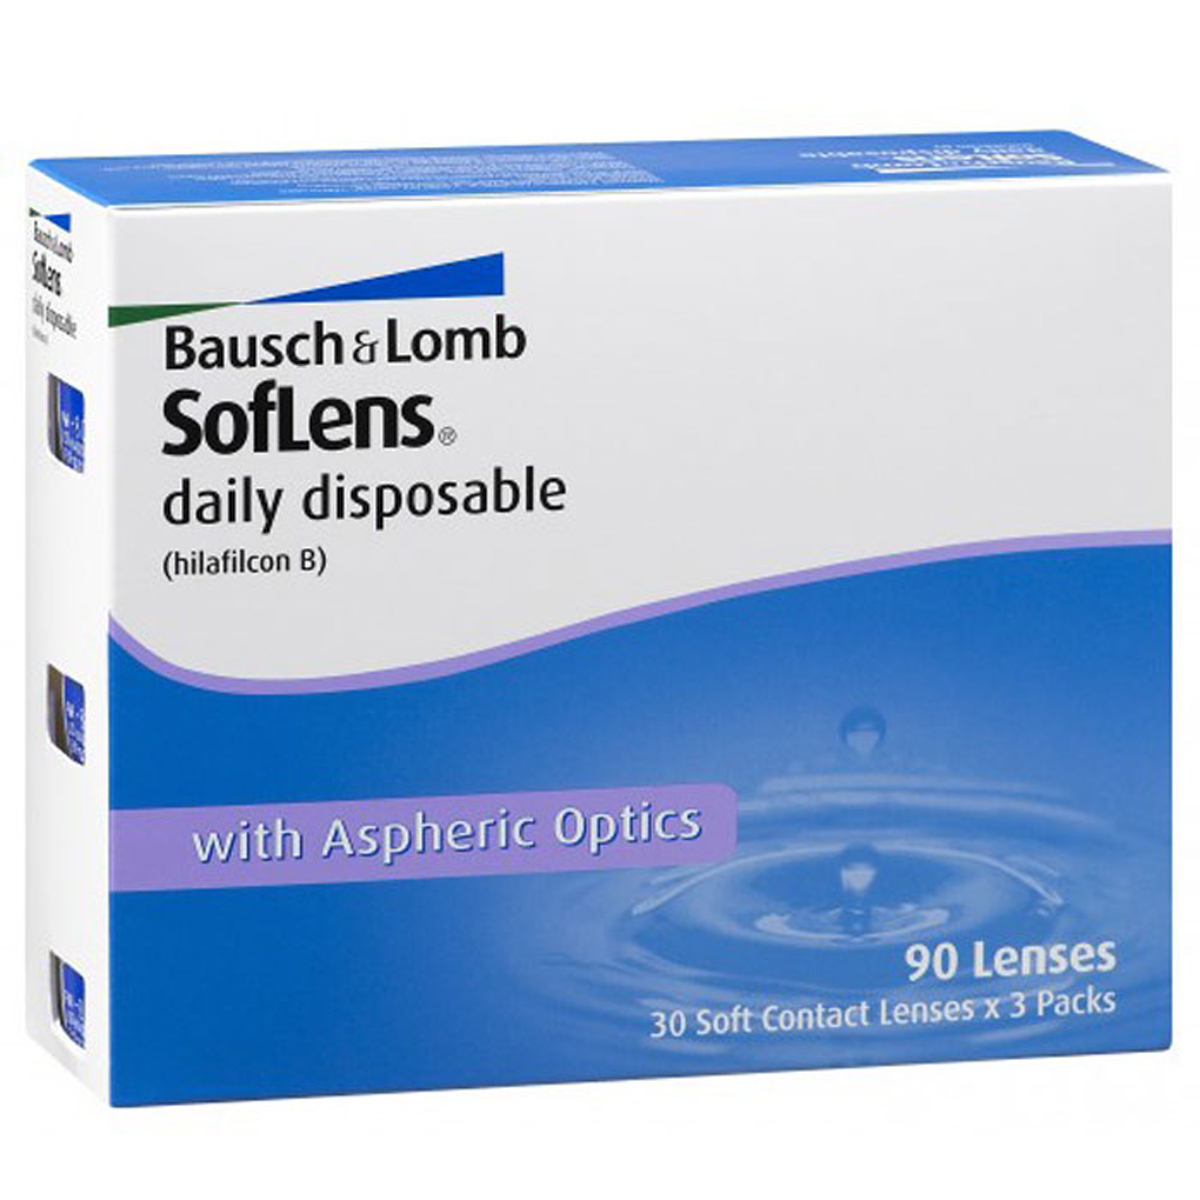 Bausch + Lomb контактные линзы Soflens Daily Disposable (90шт / 8.6 / -3.75) bausch lomb контактные линзы purevision 6шт 8 3 3 00